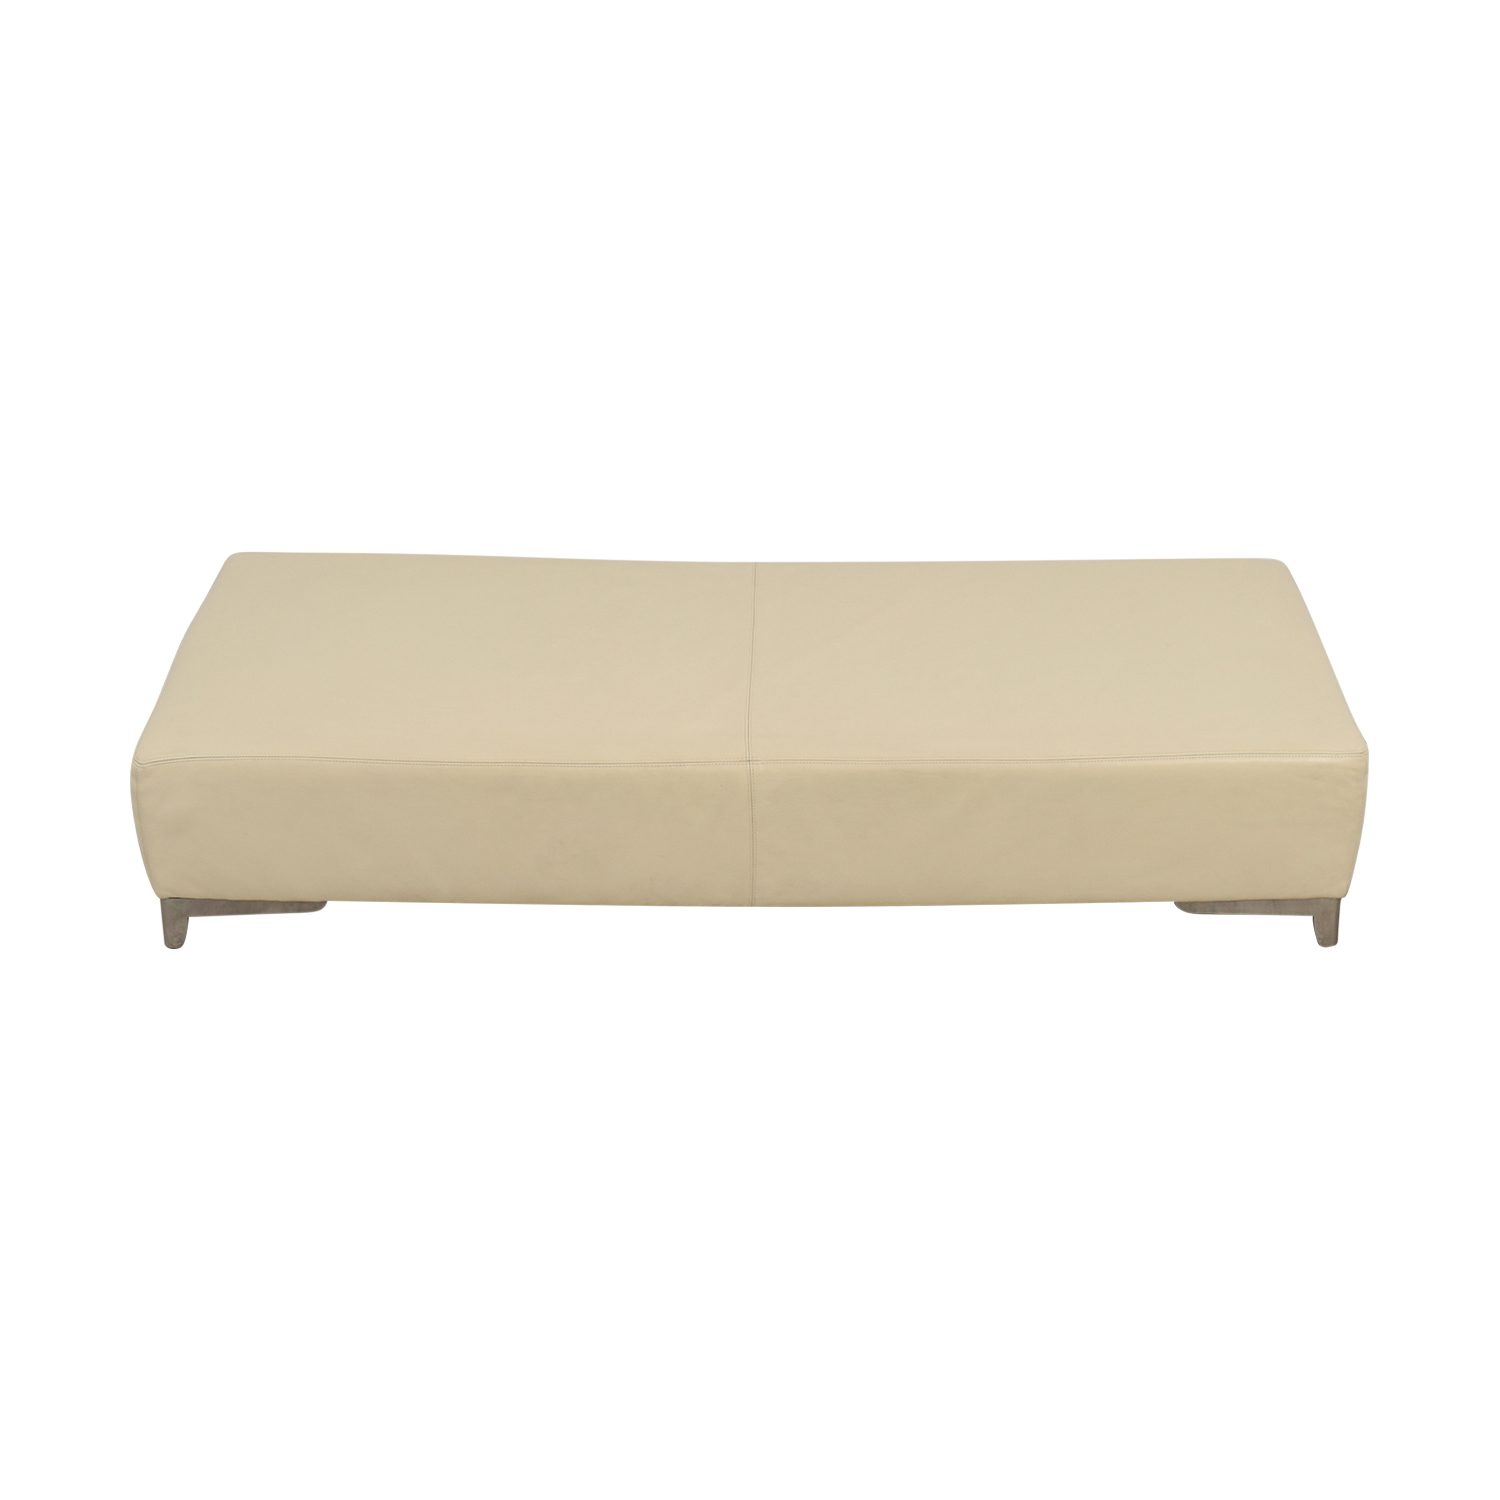 Beige Leather Coffee Table discount